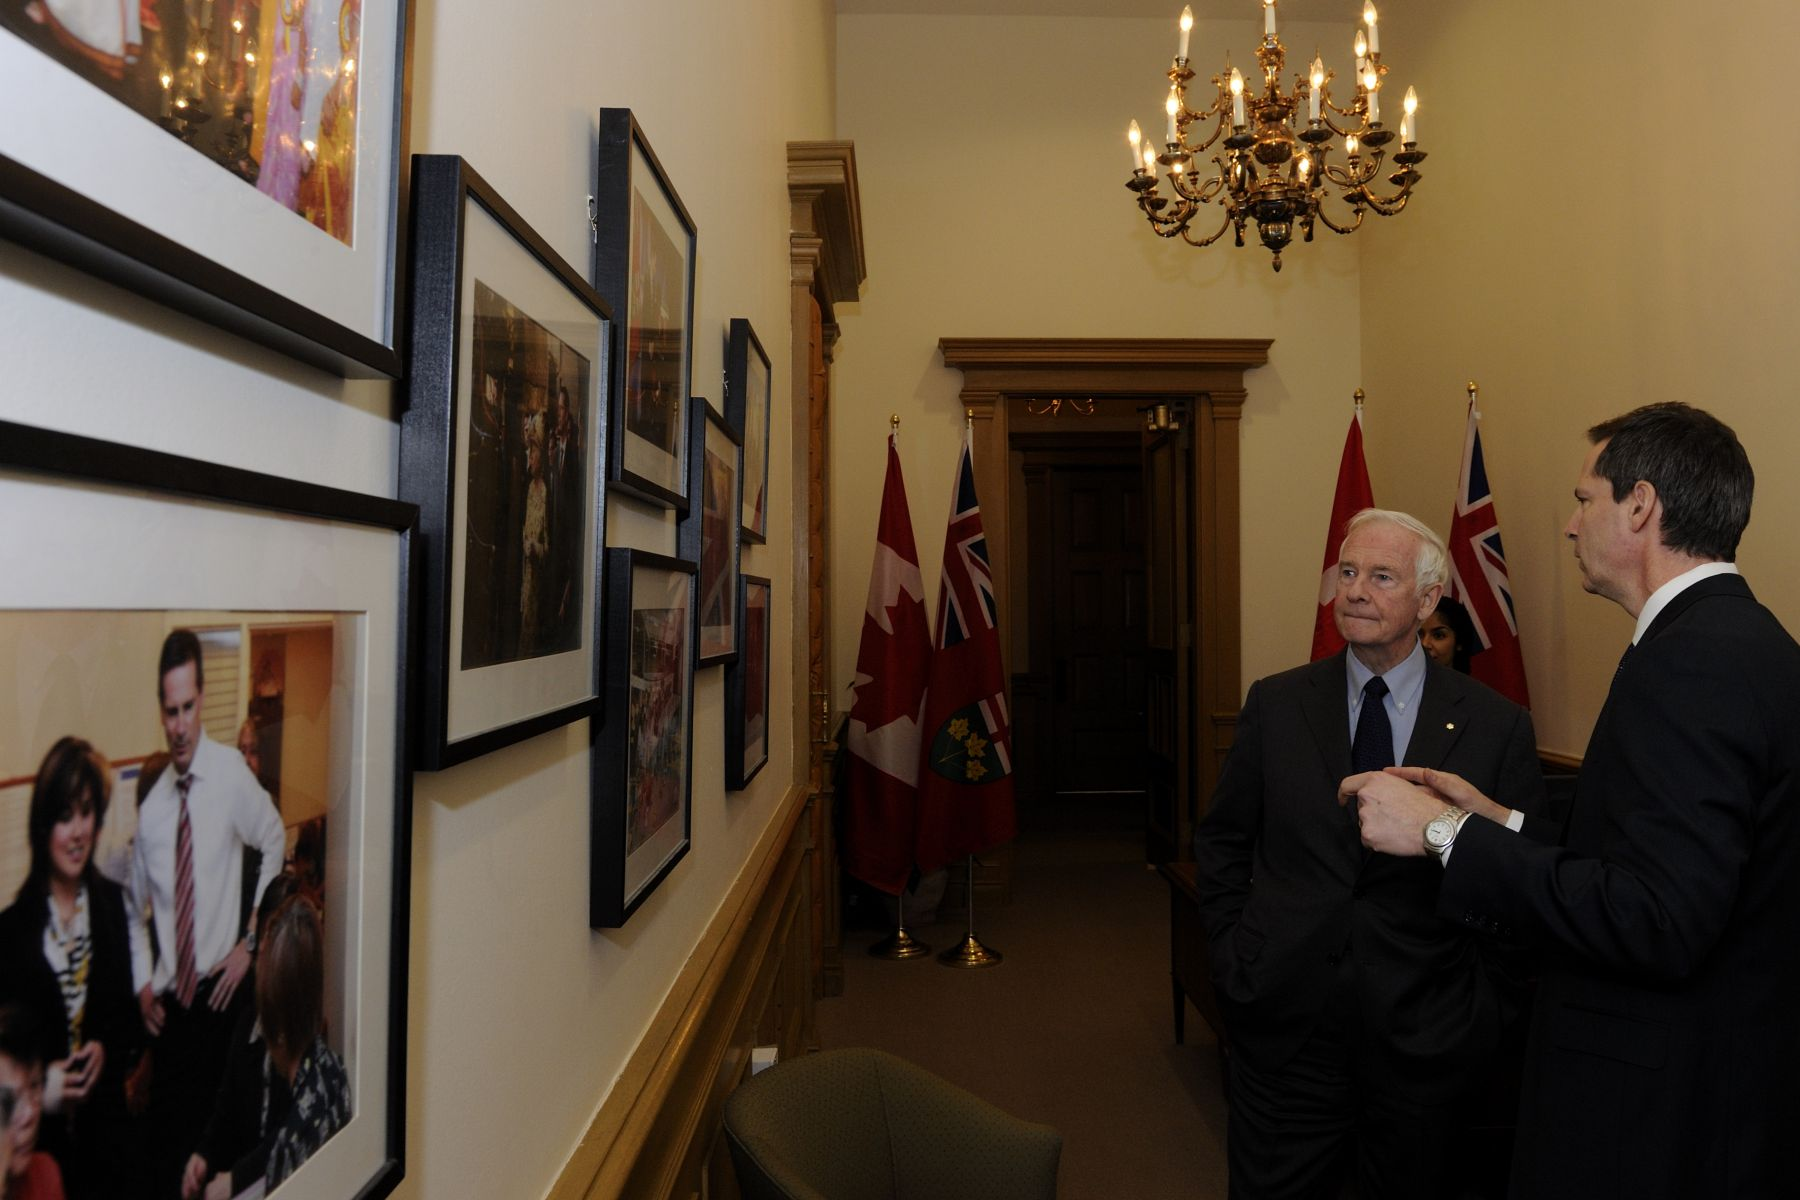 Following the official welcoming ceremony, Their Excellencies met with the Honourable Dalton McGuinty, Premier of Ontario, in his office at Queen's Park.